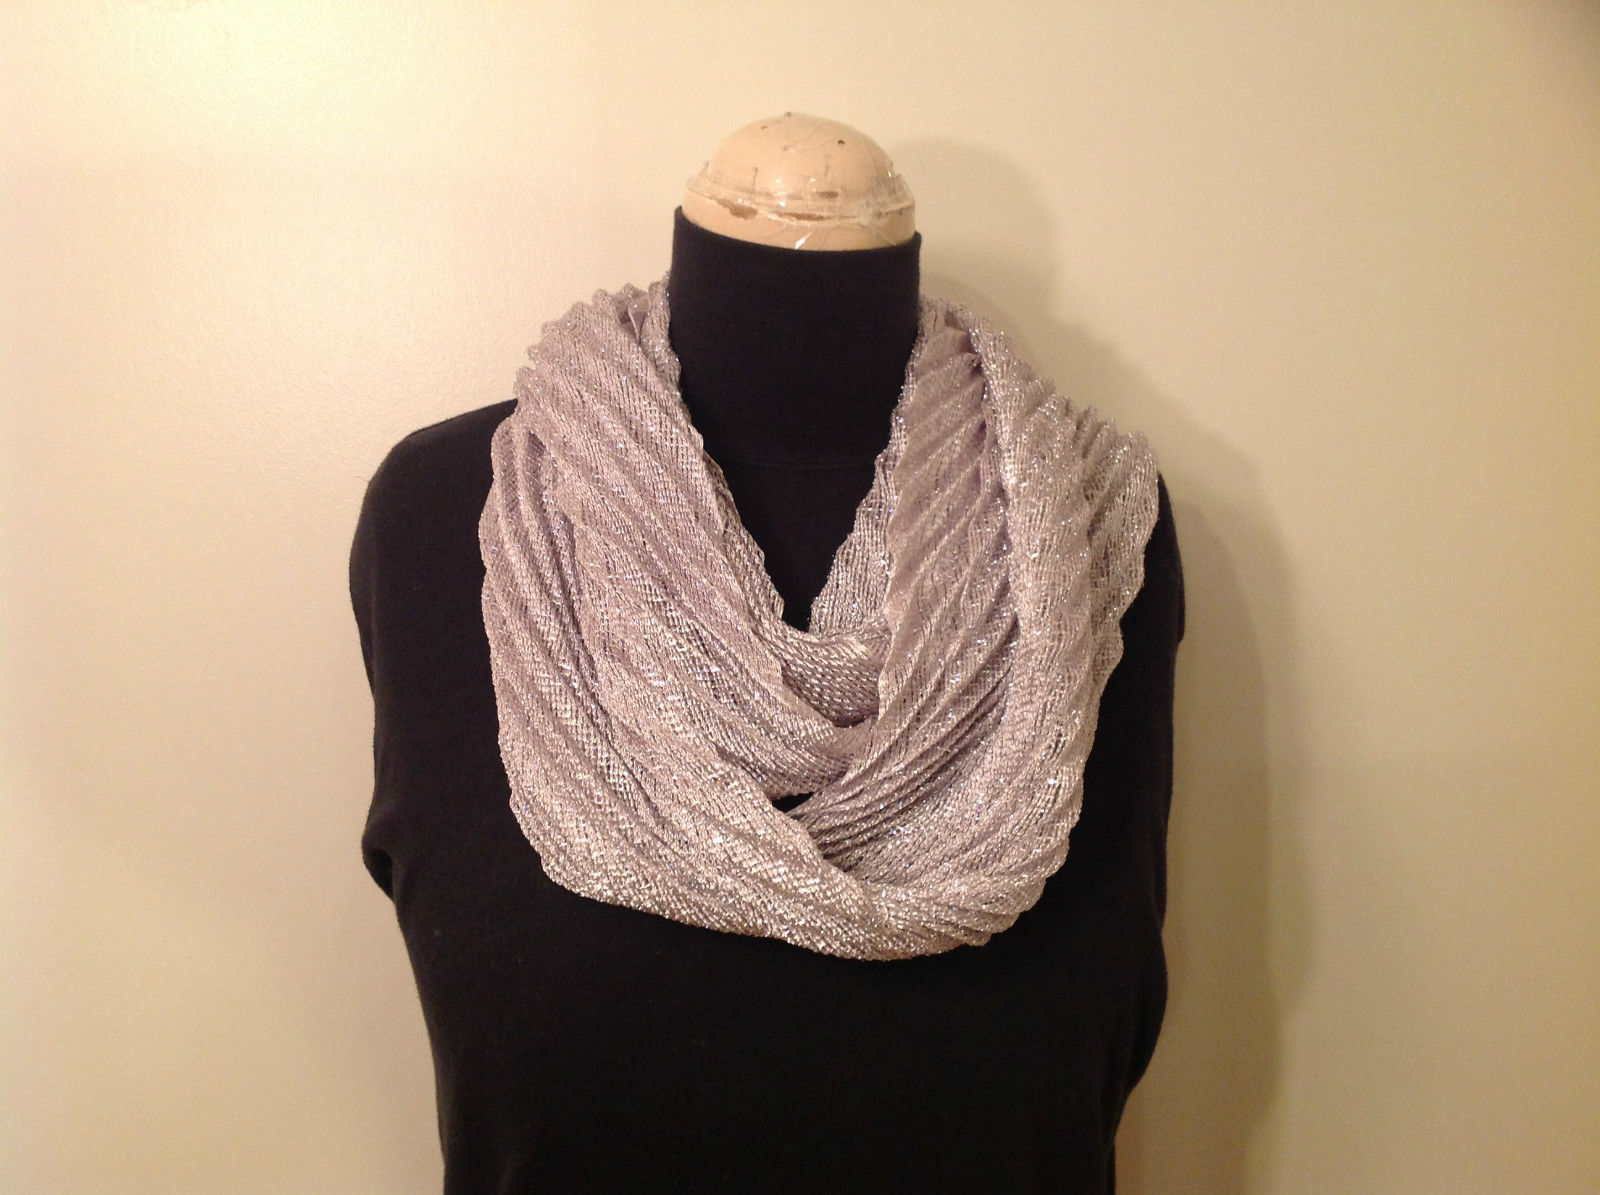 Metallic Pleated Infinity Scarf Light Gray Metallic Thread 100 Percent Polyester